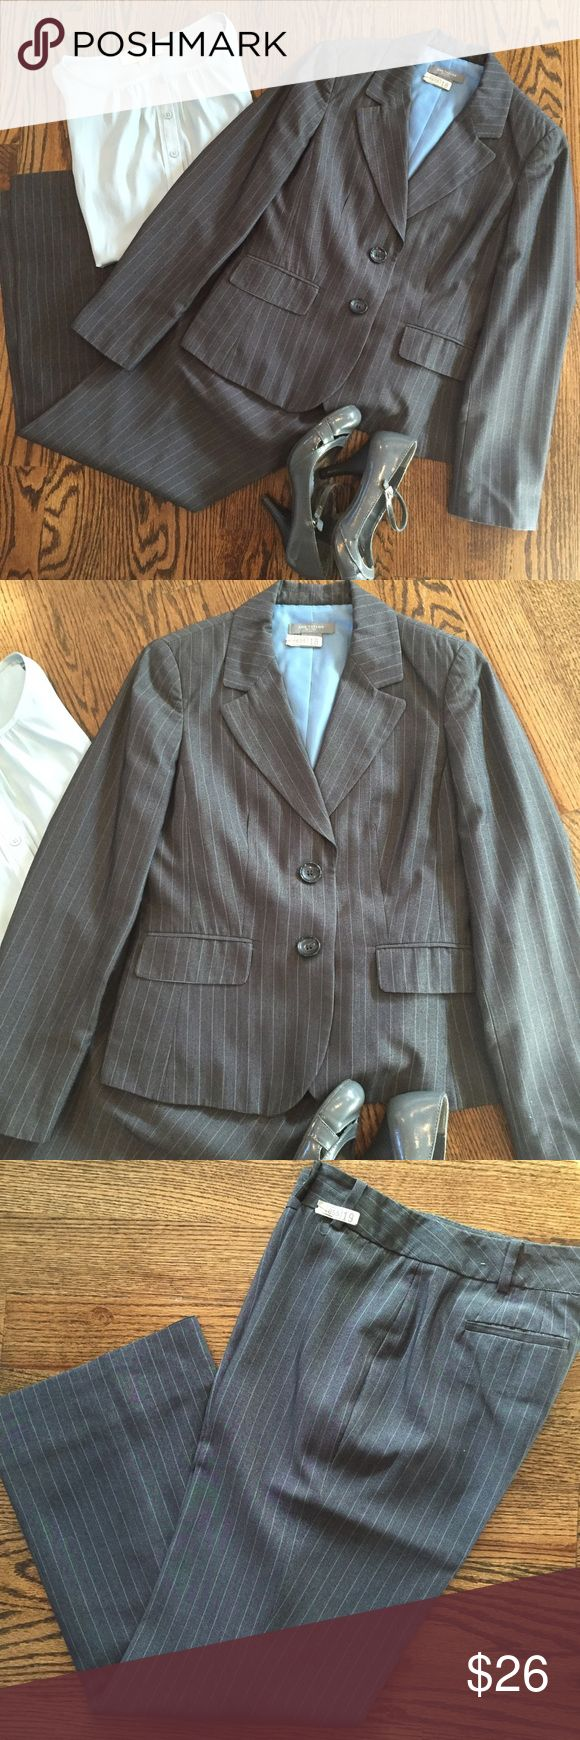 ✨New listing✨Gray & blue Ann Taylor pinstripe suit This gray & blue pinstripe pant suit from Ann Taylor has a classic silhouette.  The jacket is size 4P & is in very good used condition.  The pants have been professionally tailored from the original tagged size of 4P (tags removed in alteration).  The pants as tailored fit like an Ann Taylor 2P (15 in. waist across, 28 in. inseam). The alterations aren't visible when on, but can be seen on inside lining (Pic 4, top) The only flaw in the…